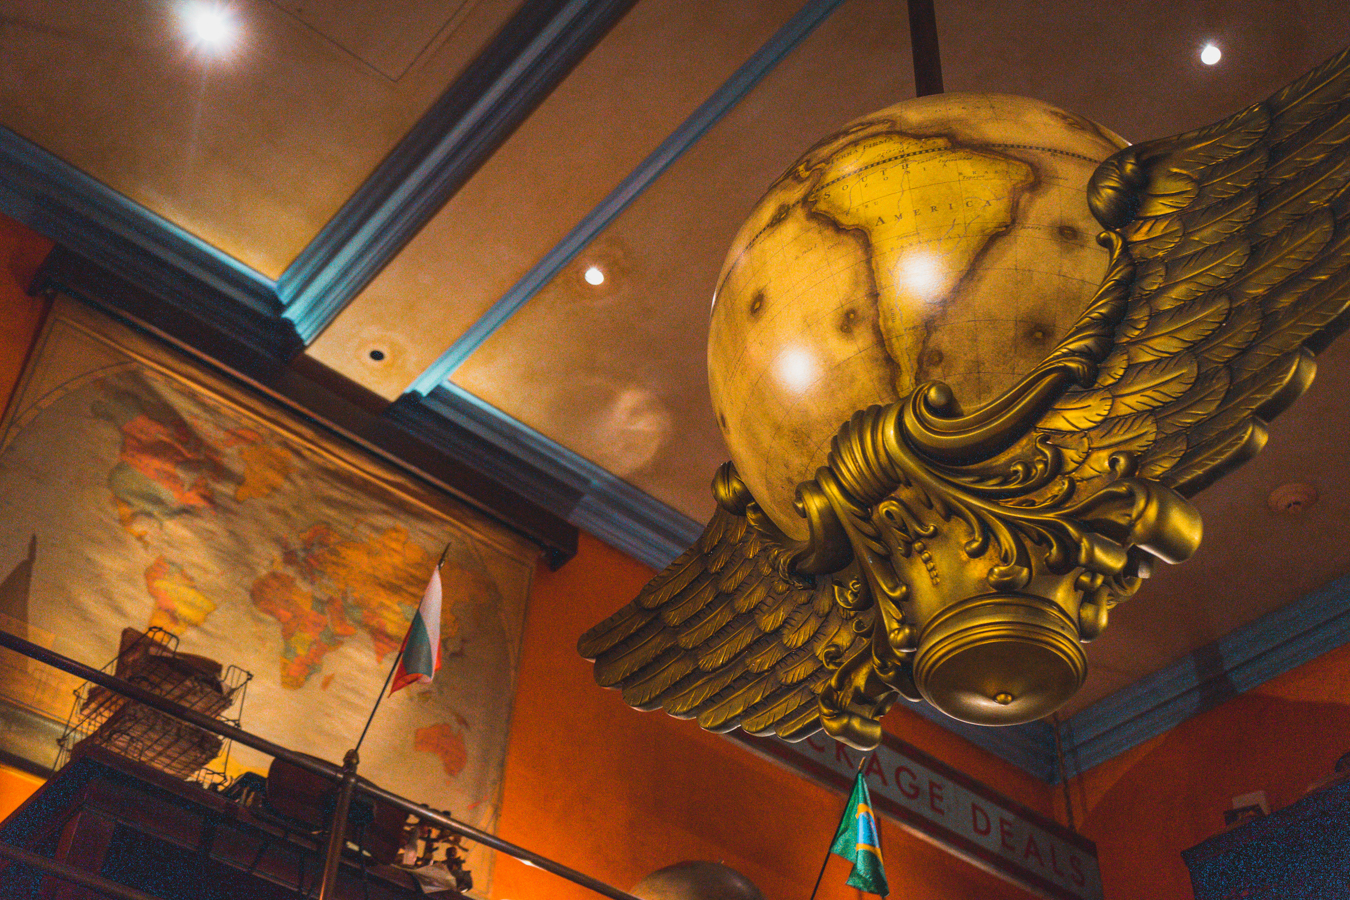 A large globe is supported by golden wings in the shop.